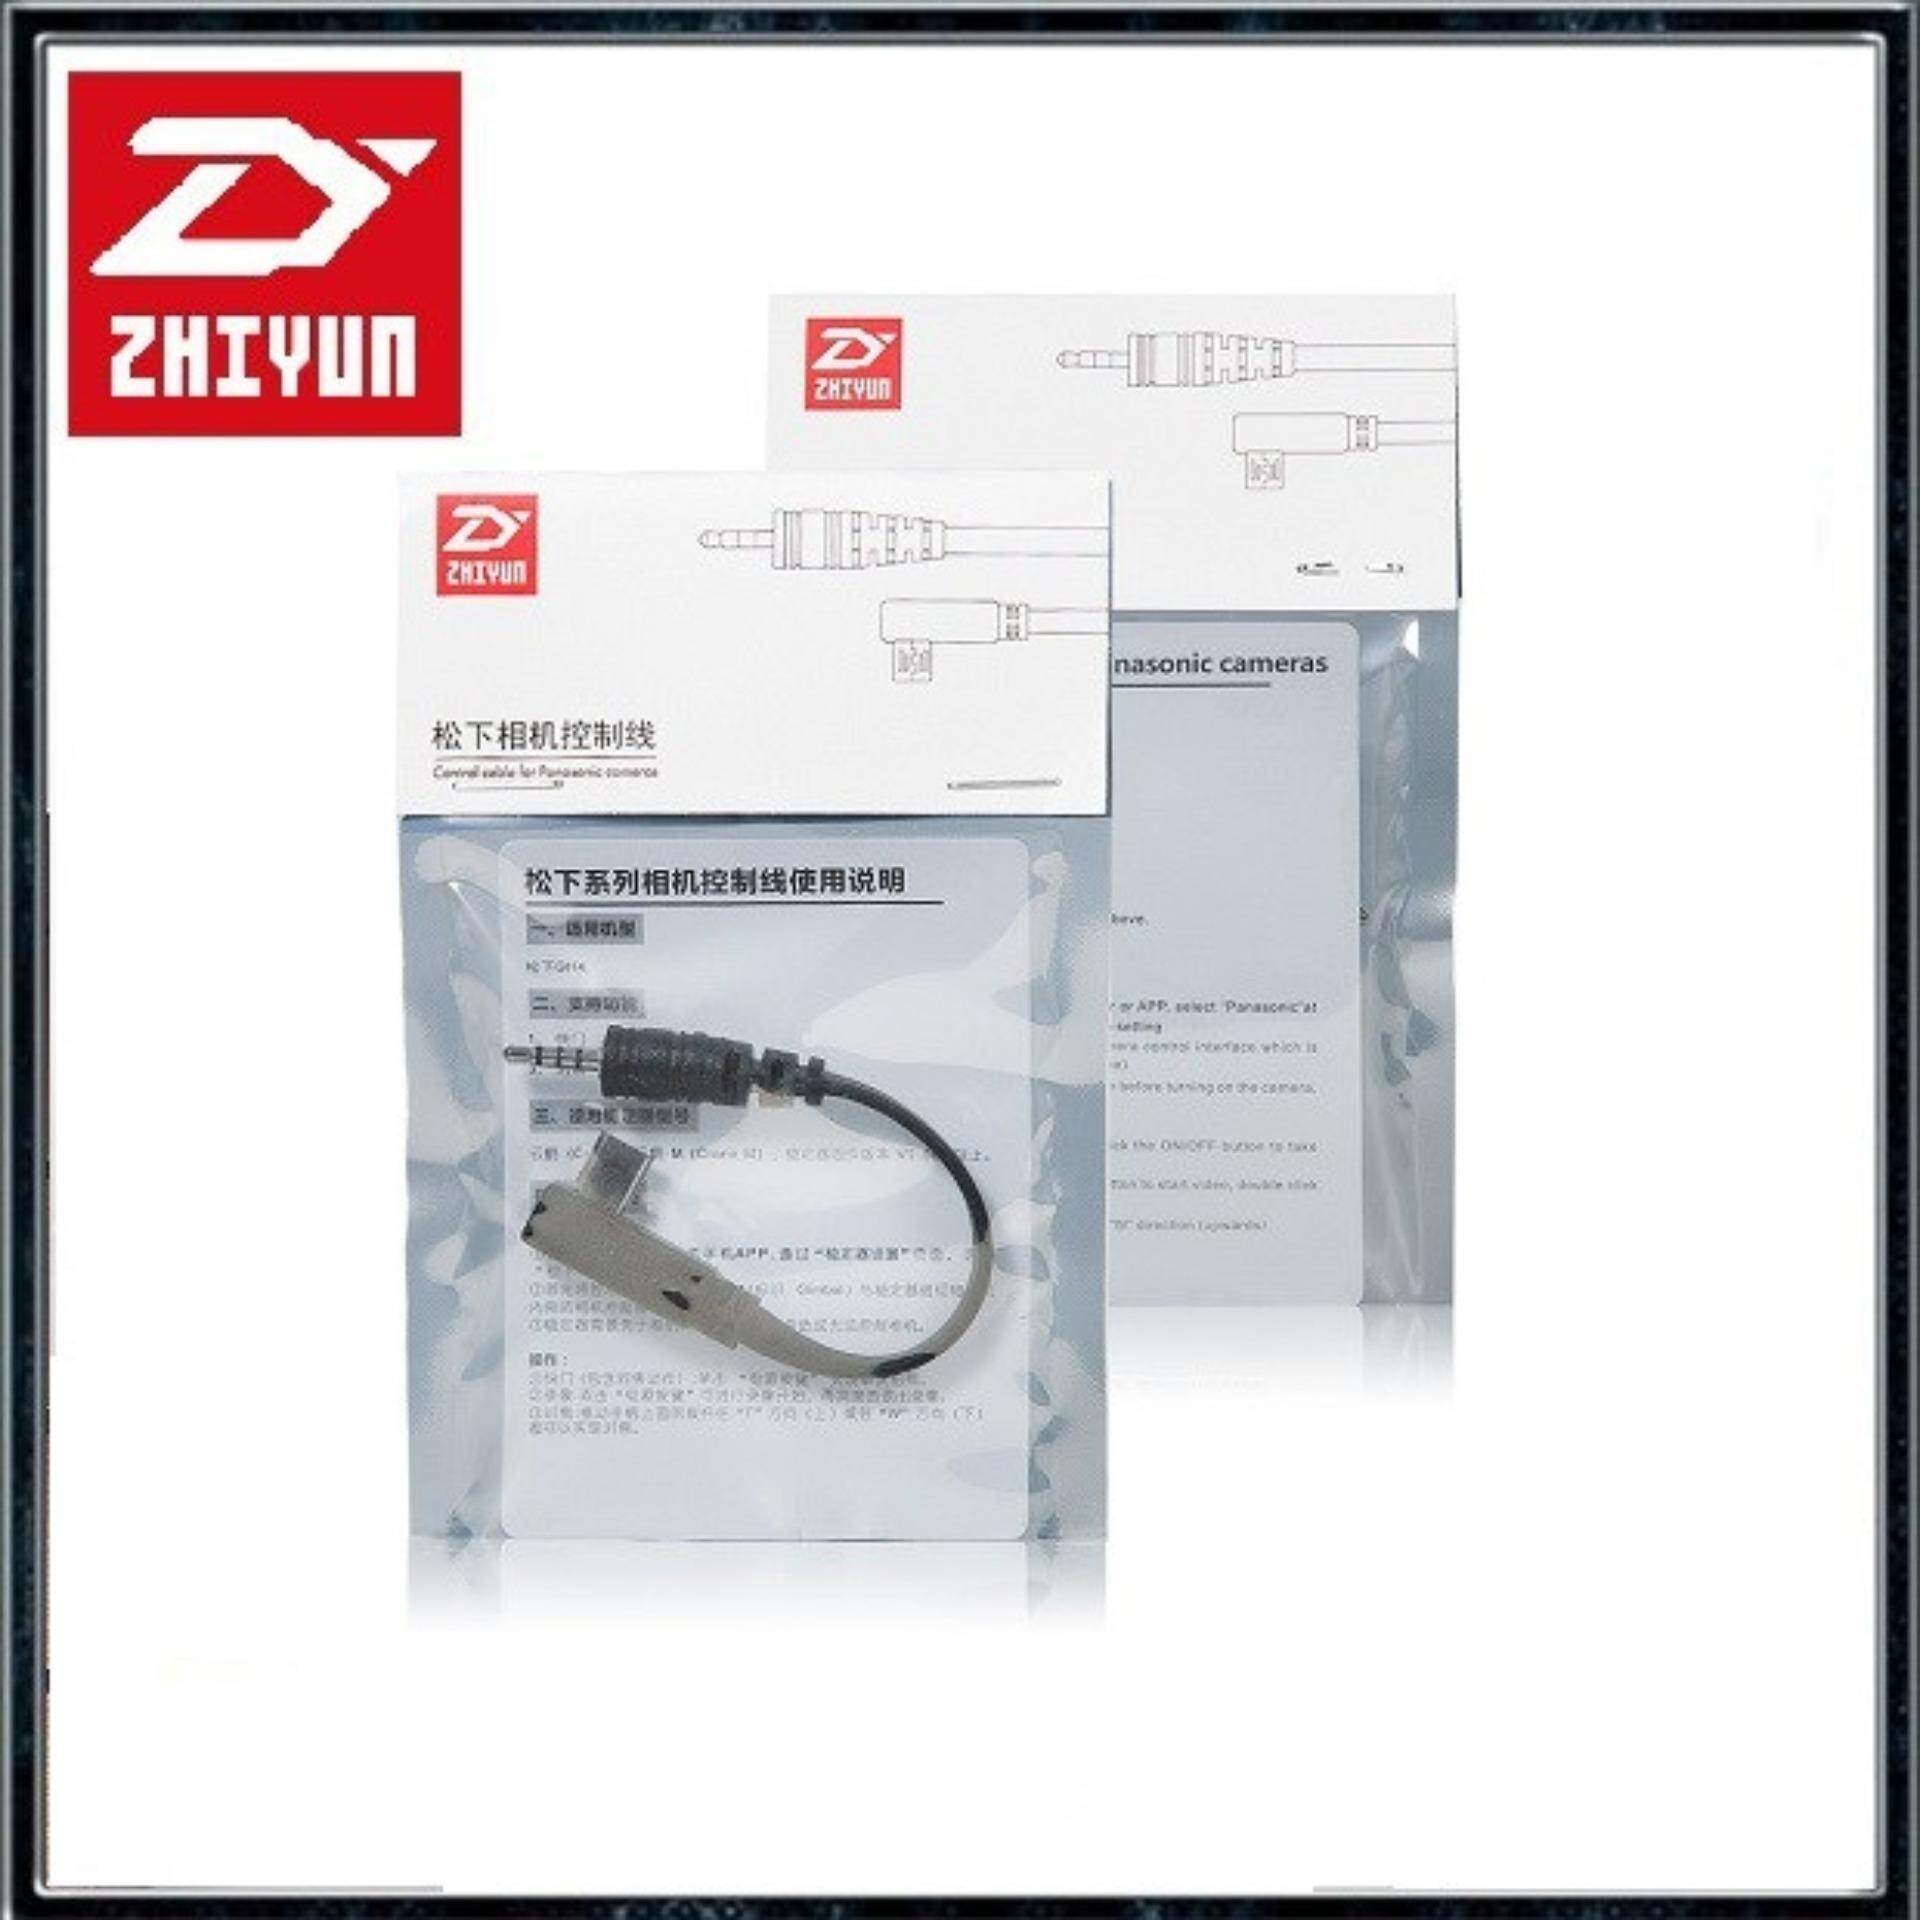 Zhiyun Control Cable Support Shutter Video and Focus Functions for Panasonic GH4 Camera